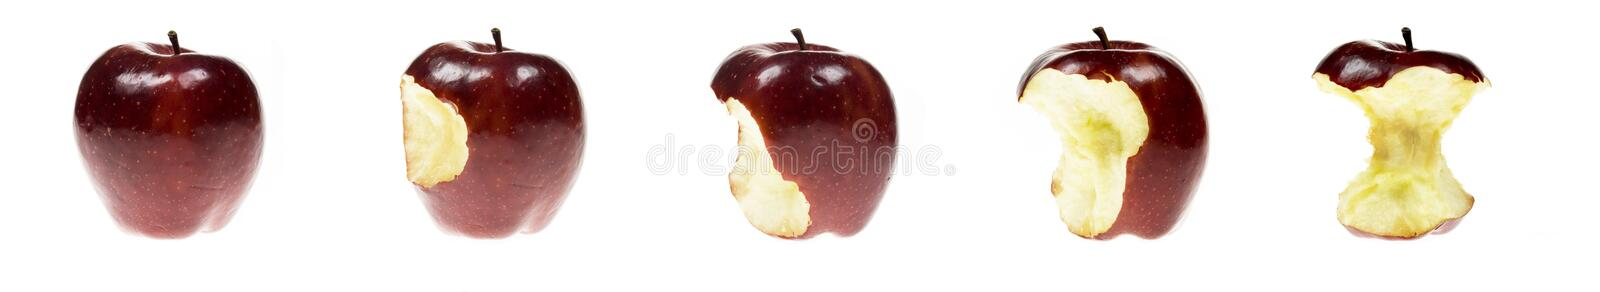 Download Apple series stock photo. Image of healthy, time, fruit - 11341234